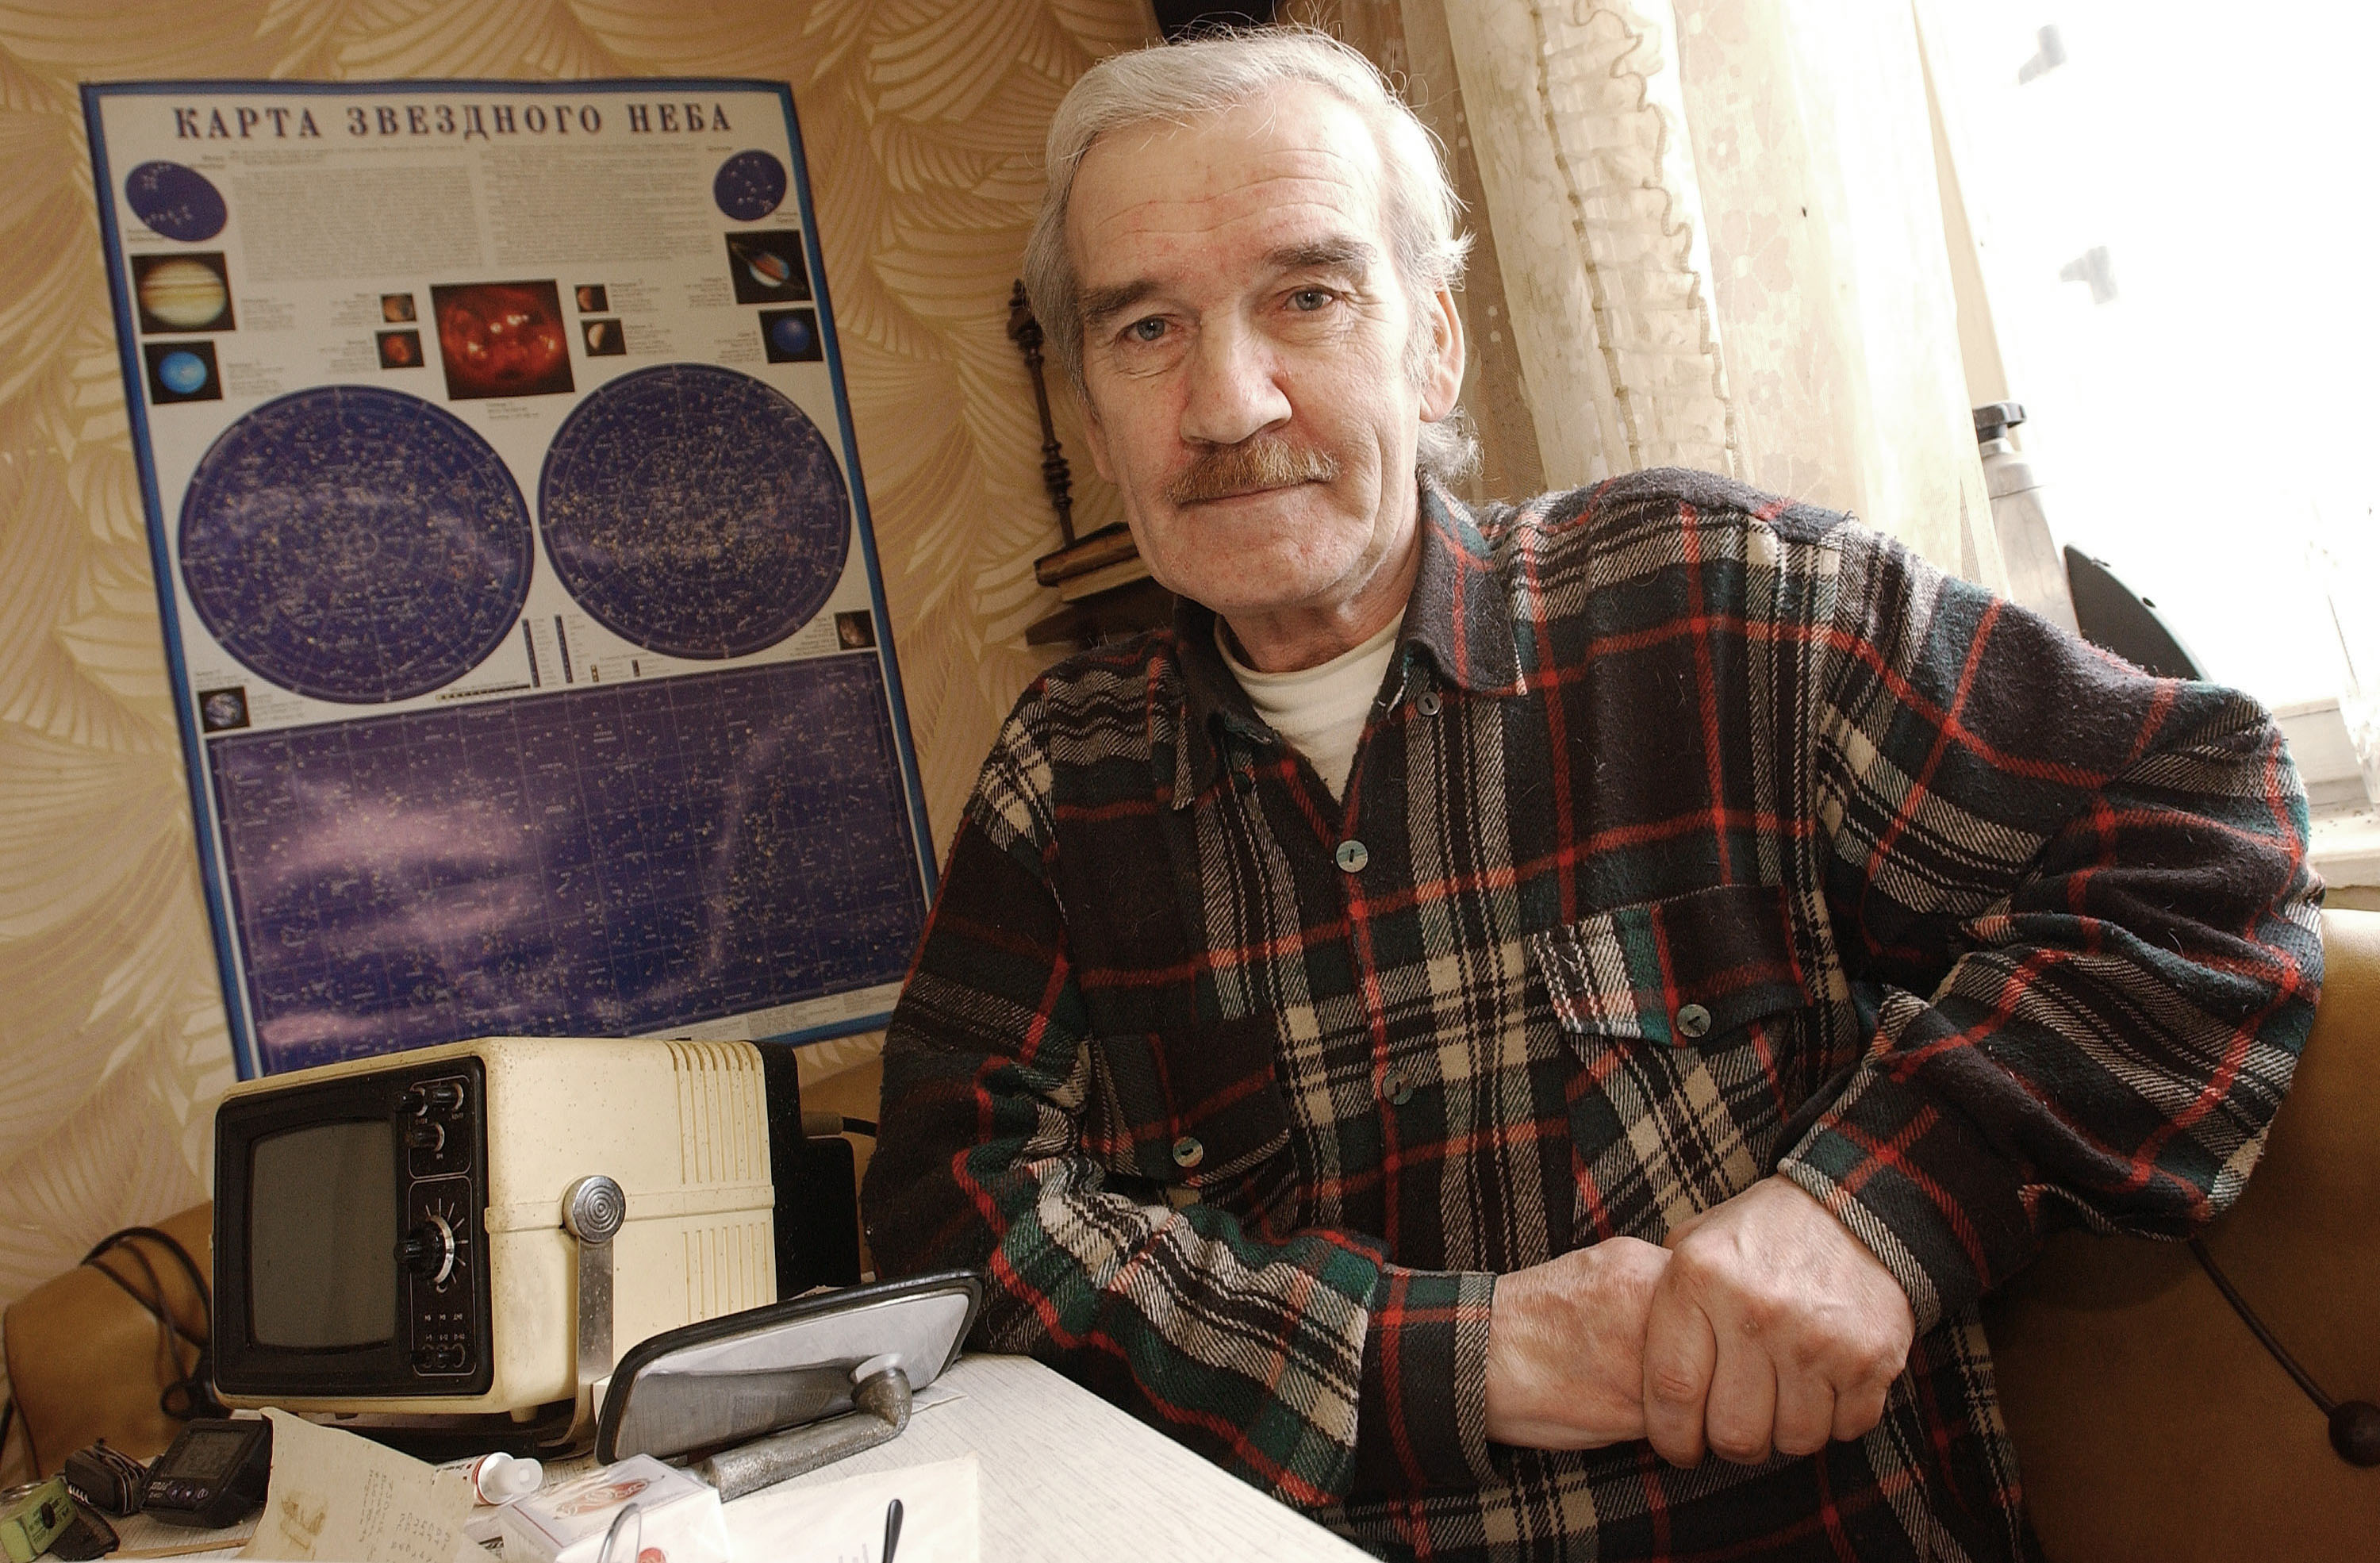 35 years ago today, one man saved us from world-ending nuclear war